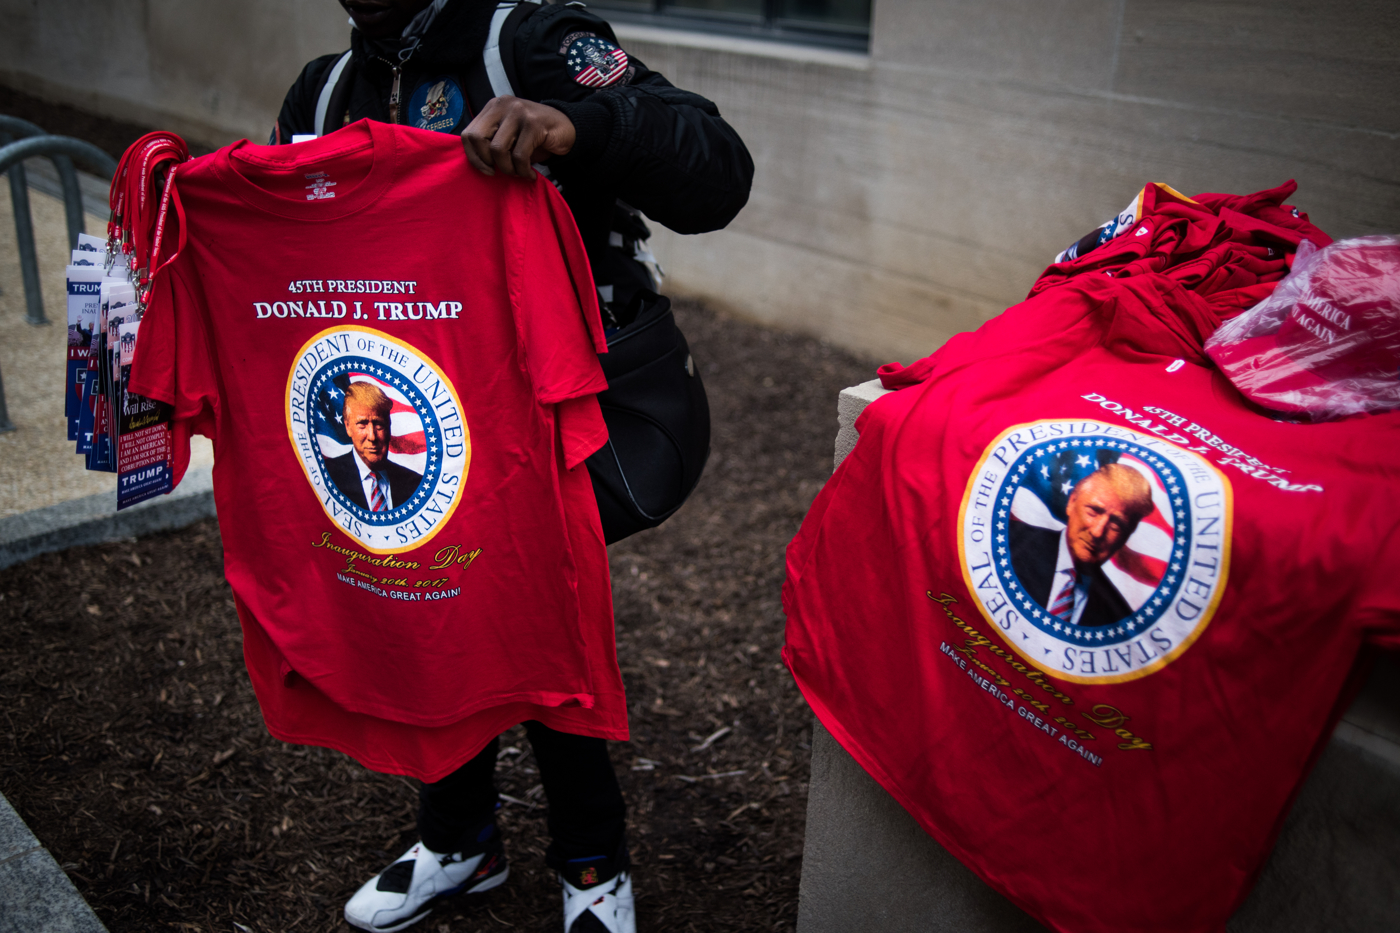 A vendor sells t-shirts before Donald Trump's inauguration as the 45th President of the United States in Washington, D.C., on January 20, 2017. Credit: Mark Kauzlarich for CNN